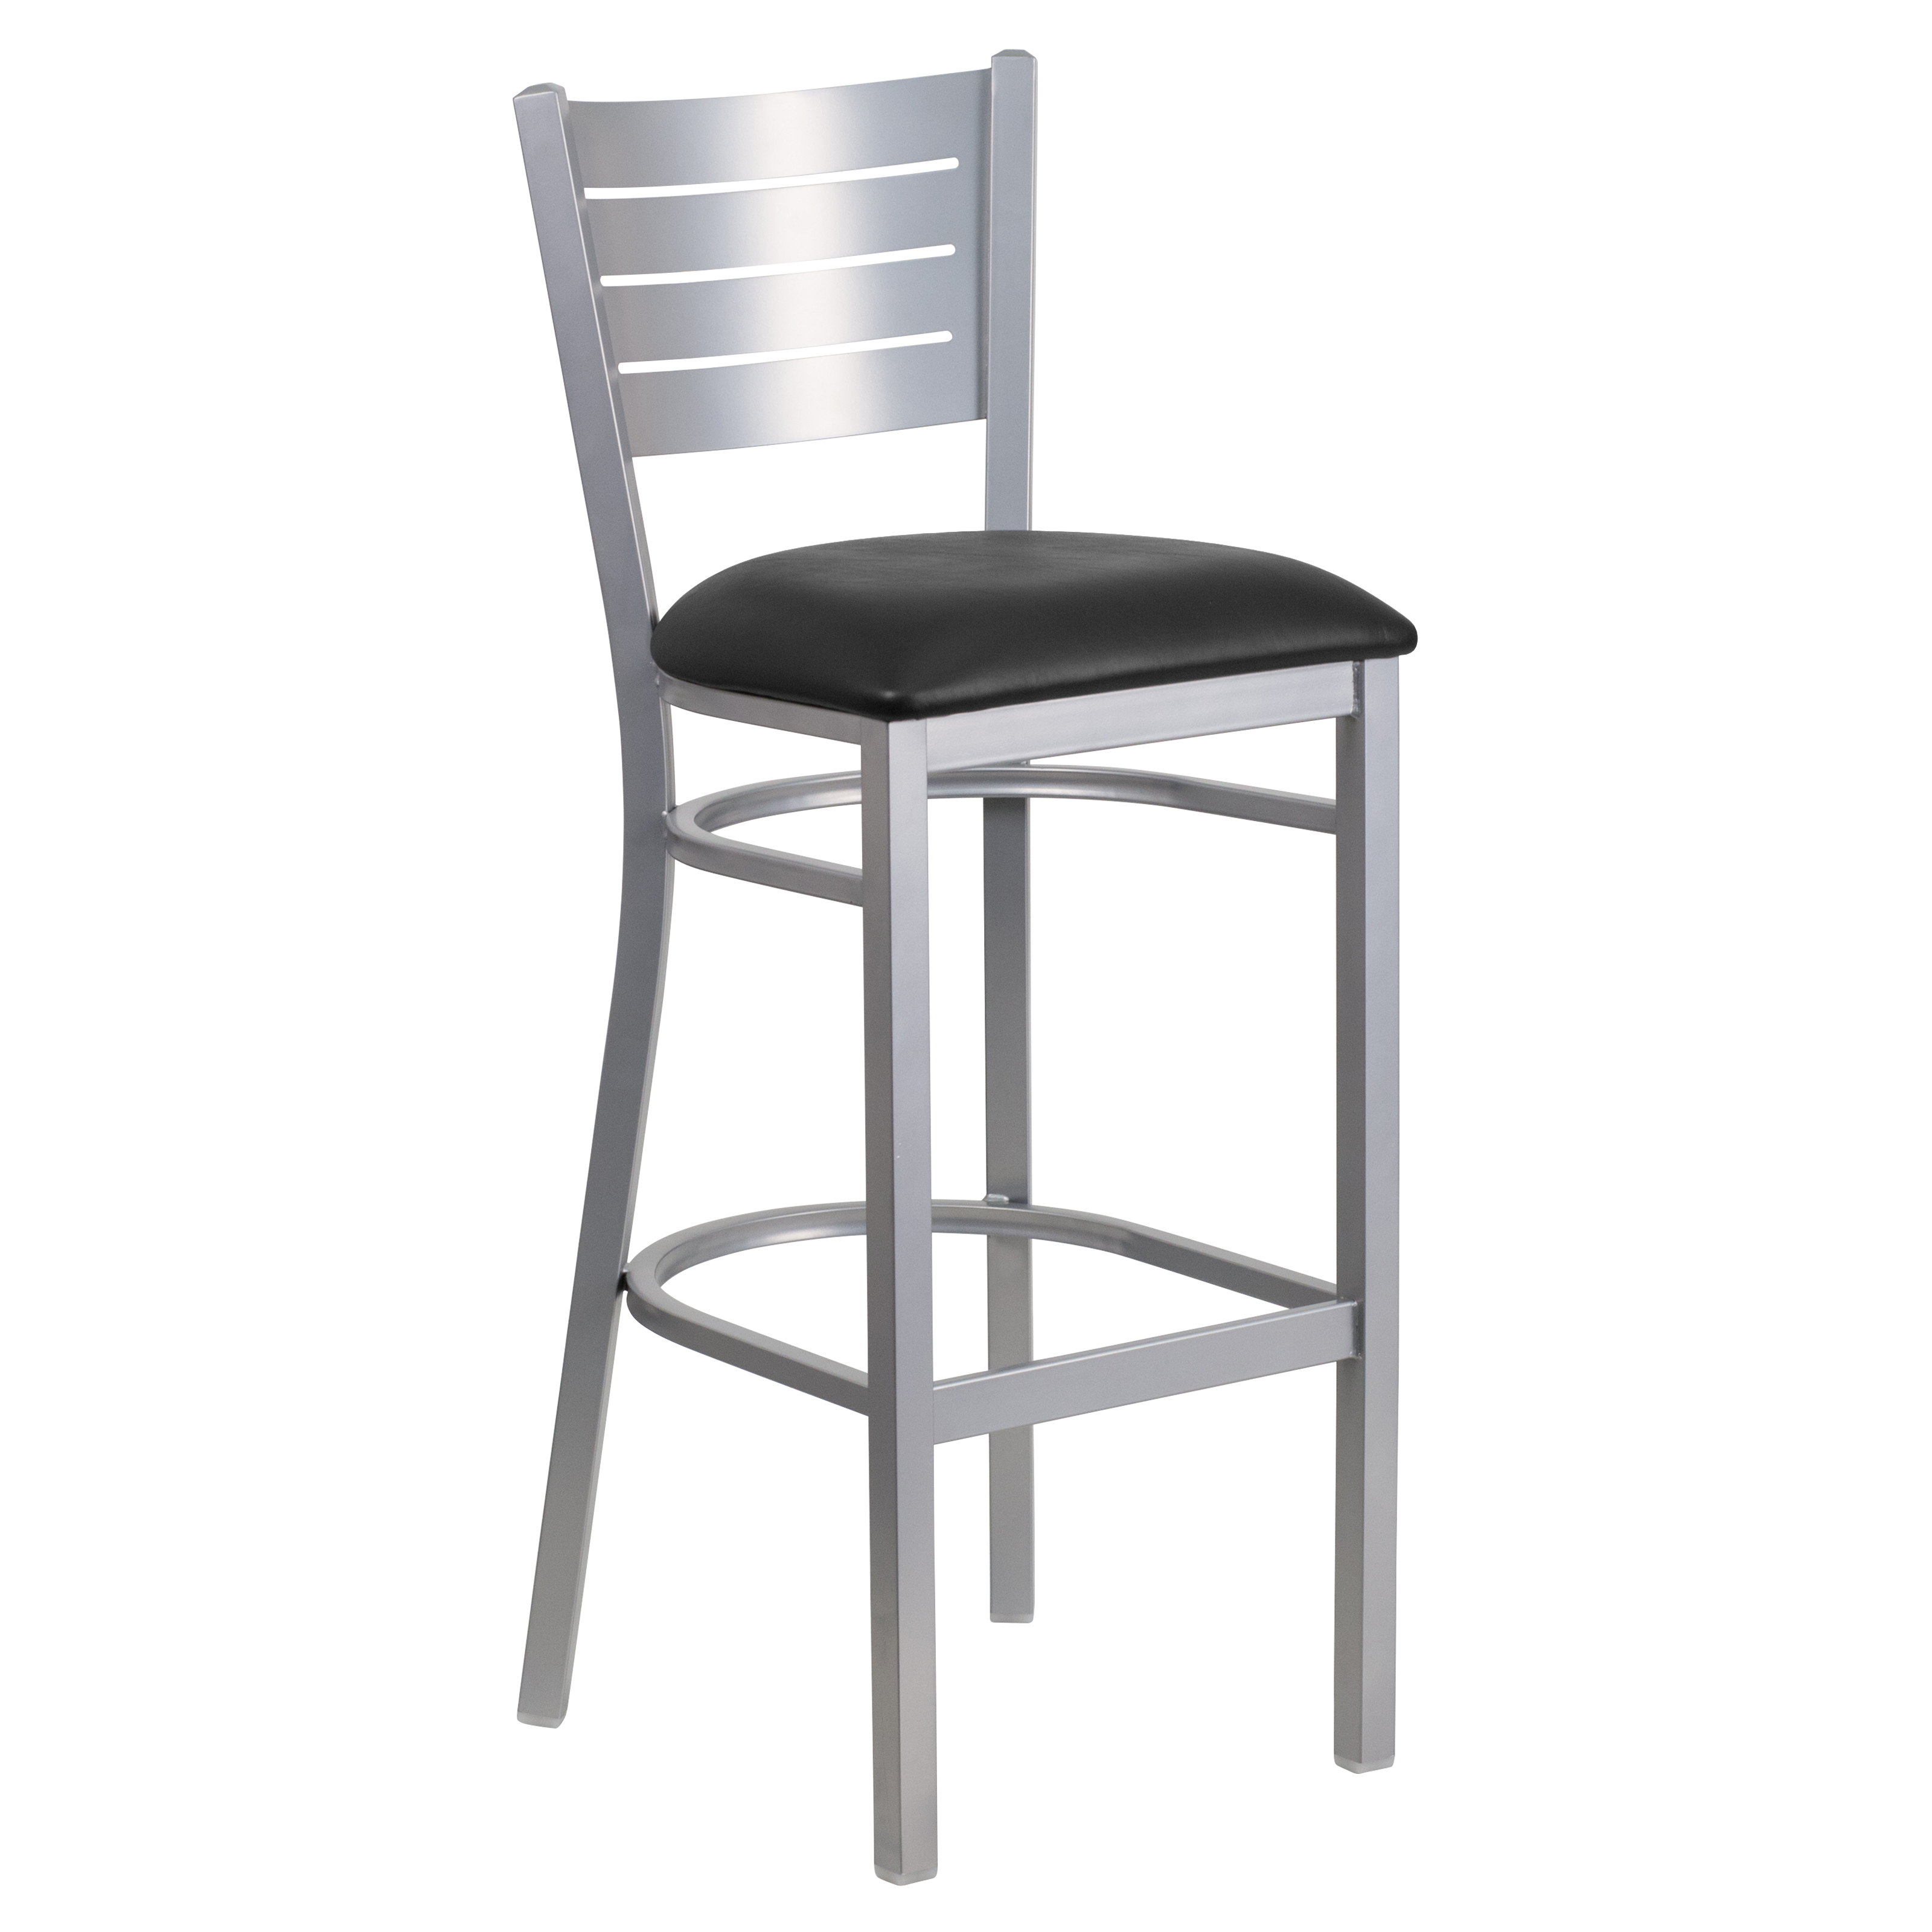 Flash Furniture 31 in. Hercules Vertical Slat Back Wood Seat Restaurant Bar Stool | Hayneedle  sc 1 st  Hayneedle & Flash Furniture 31 in. Hercules Vertical Slat Back Wood Seat ... islam-shia.org